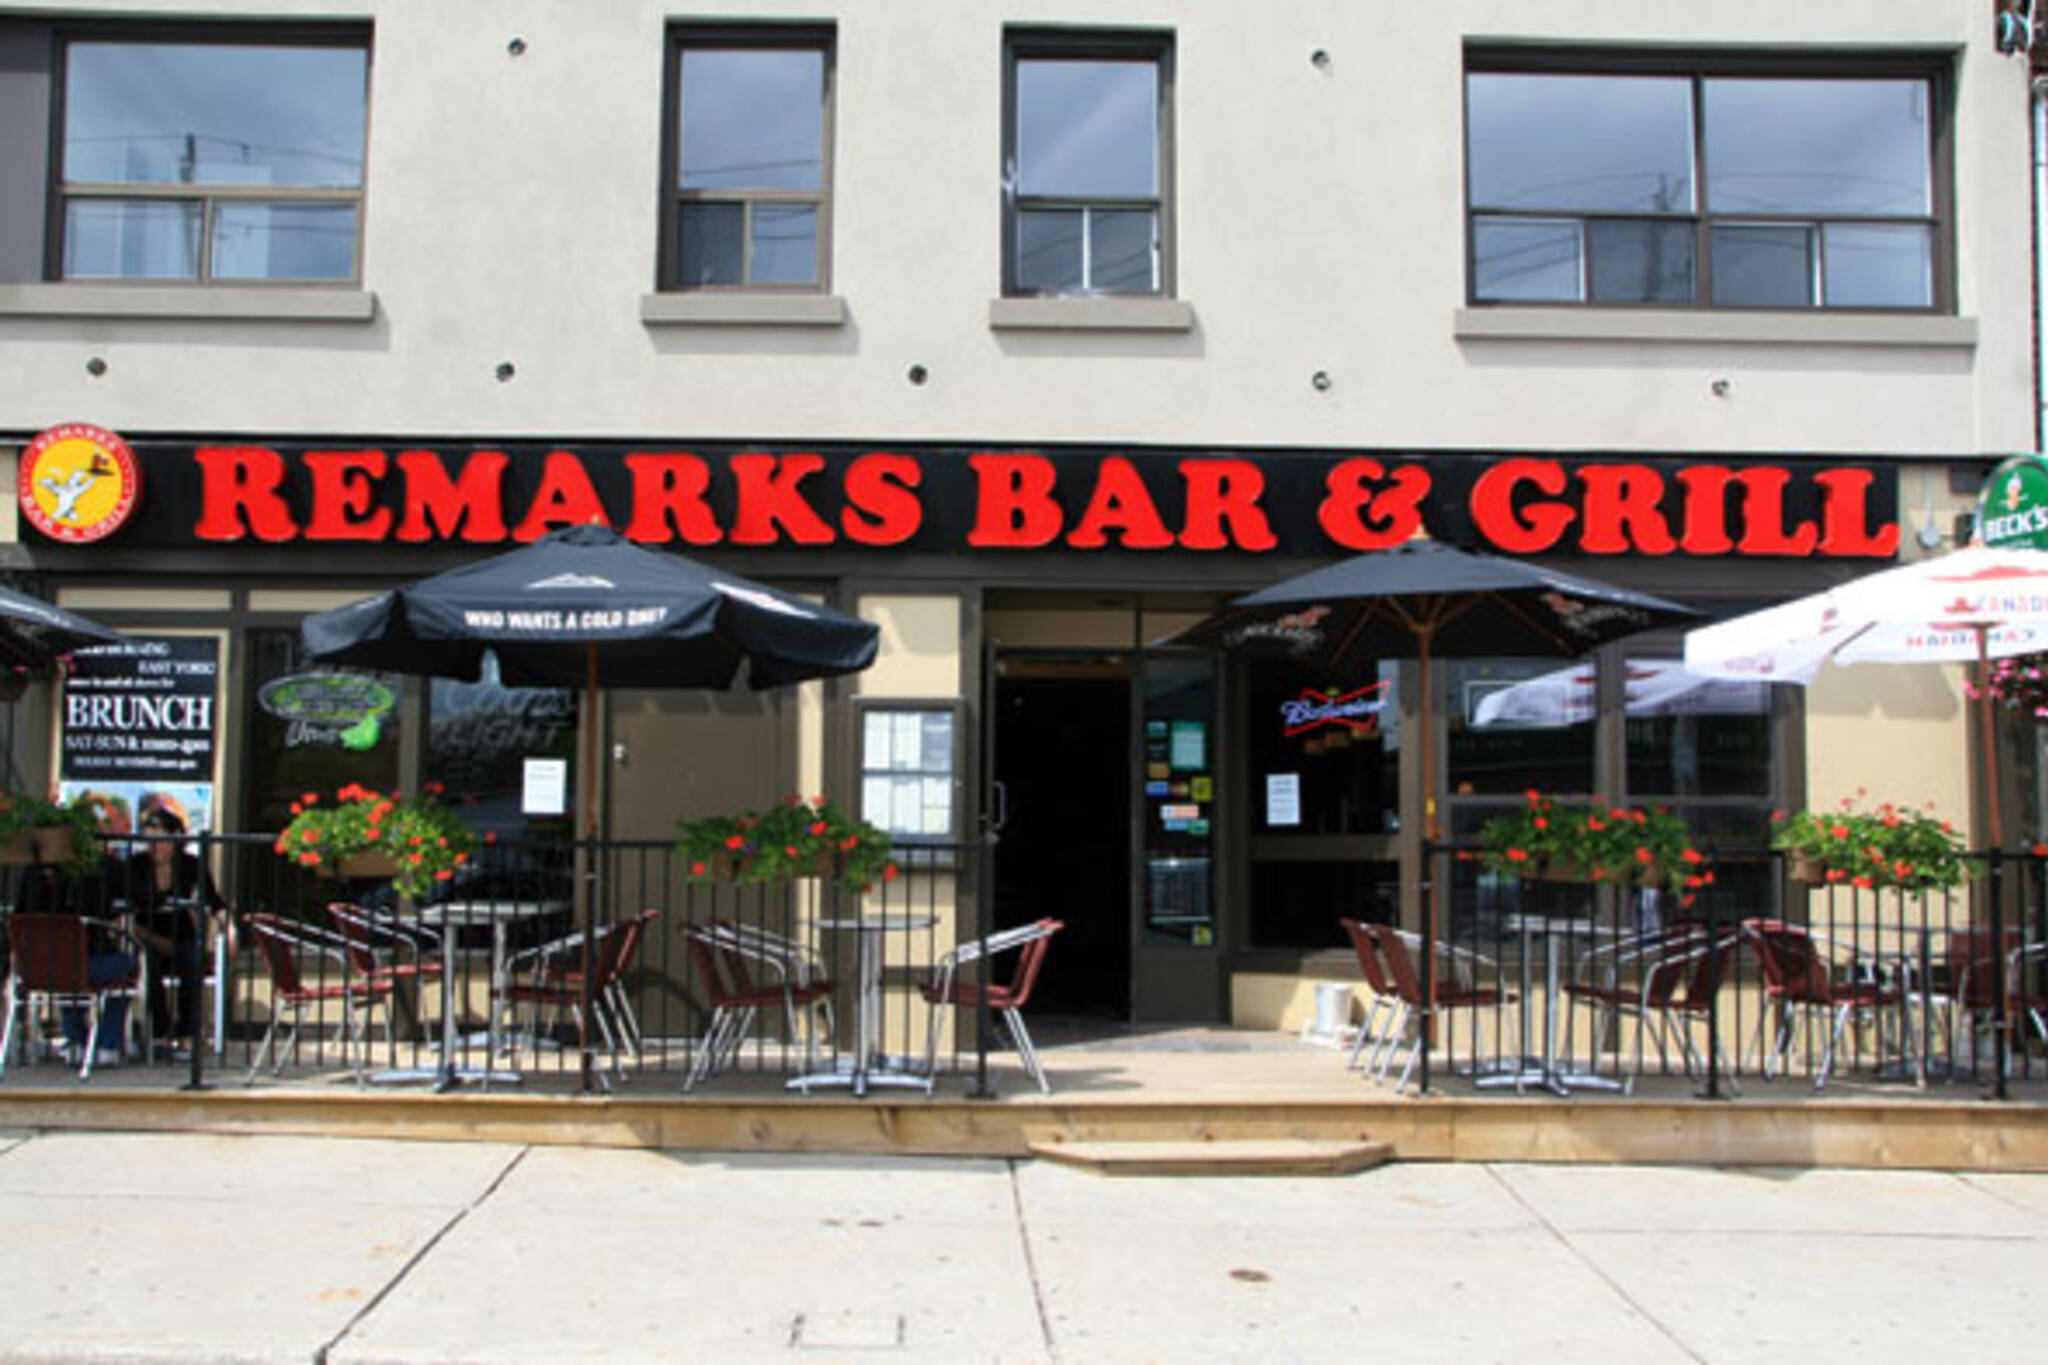 Remarks Bar and Grill